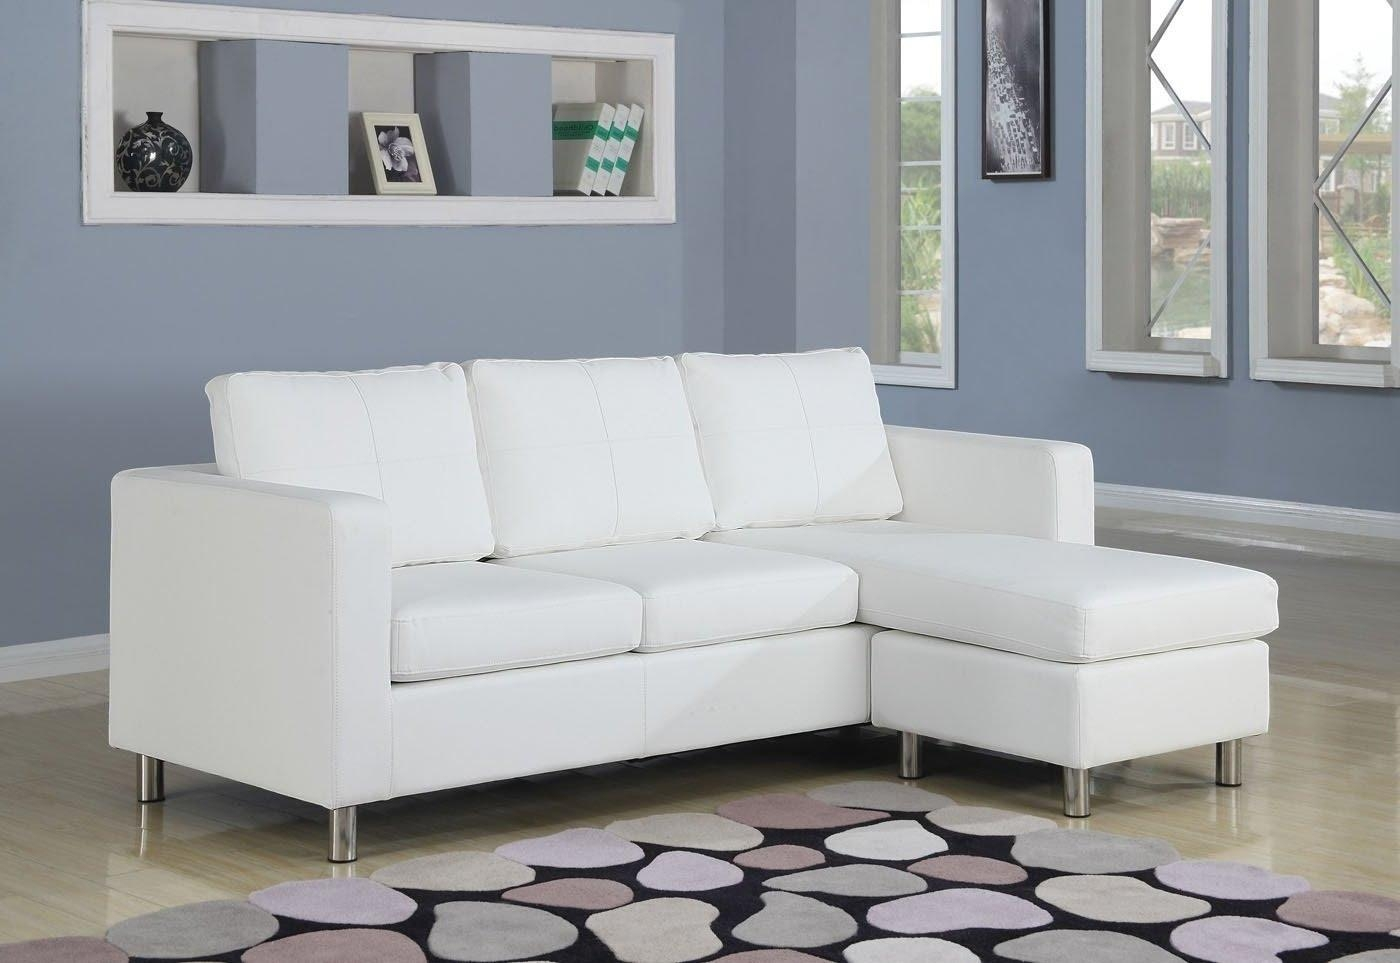 Sofa : Awesome Sectional Sleeper Sofa Small Spaces Home Design Intended For Sectional Small Spaces (Image 19 of 20)